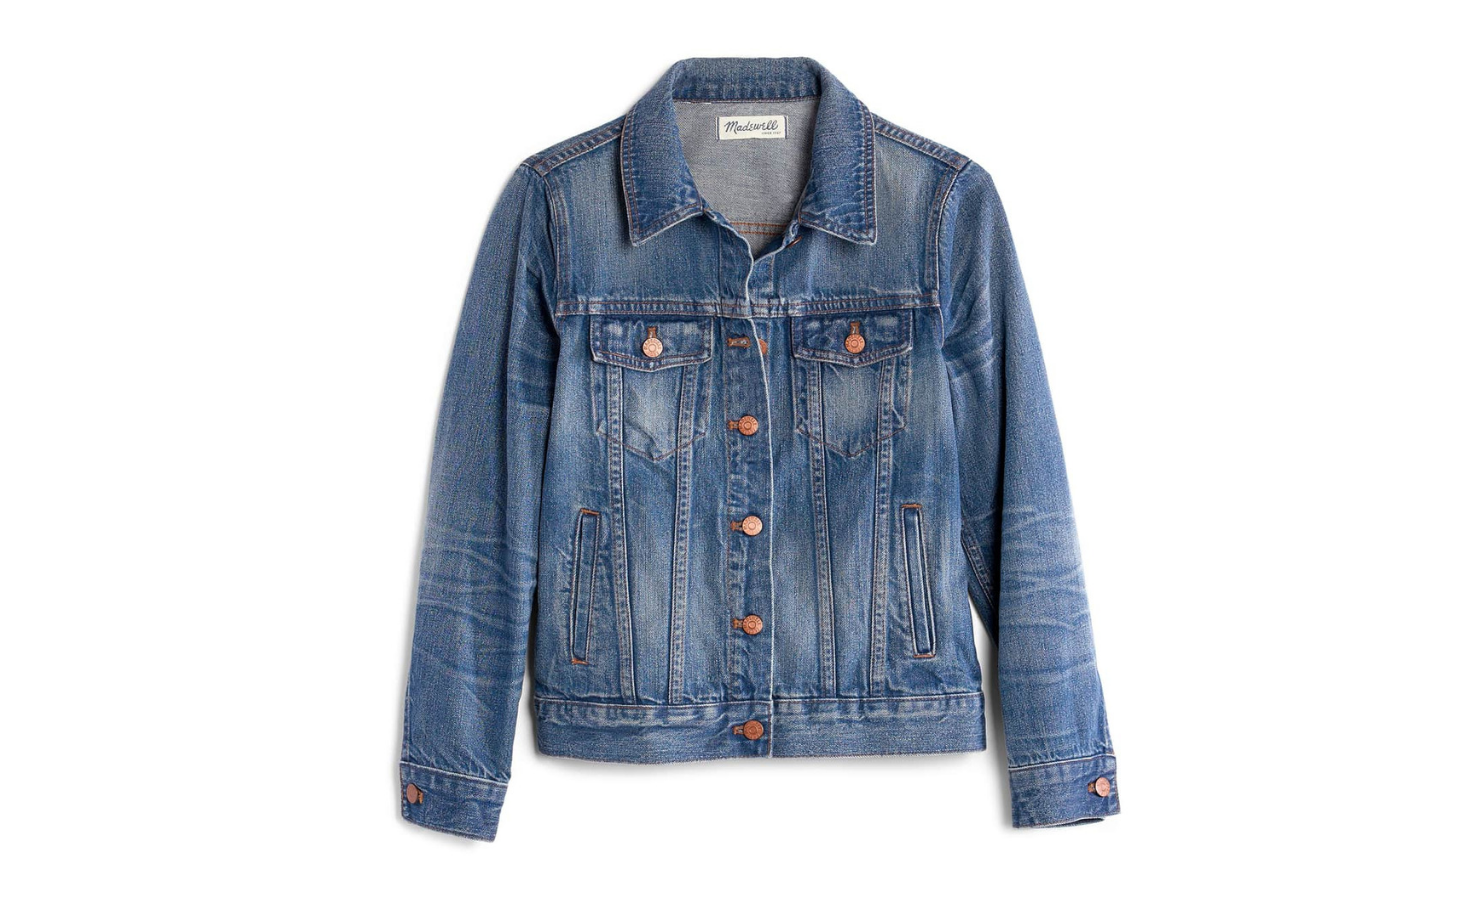 Spring 2019 Wardrobe Essentials Denim Jacket